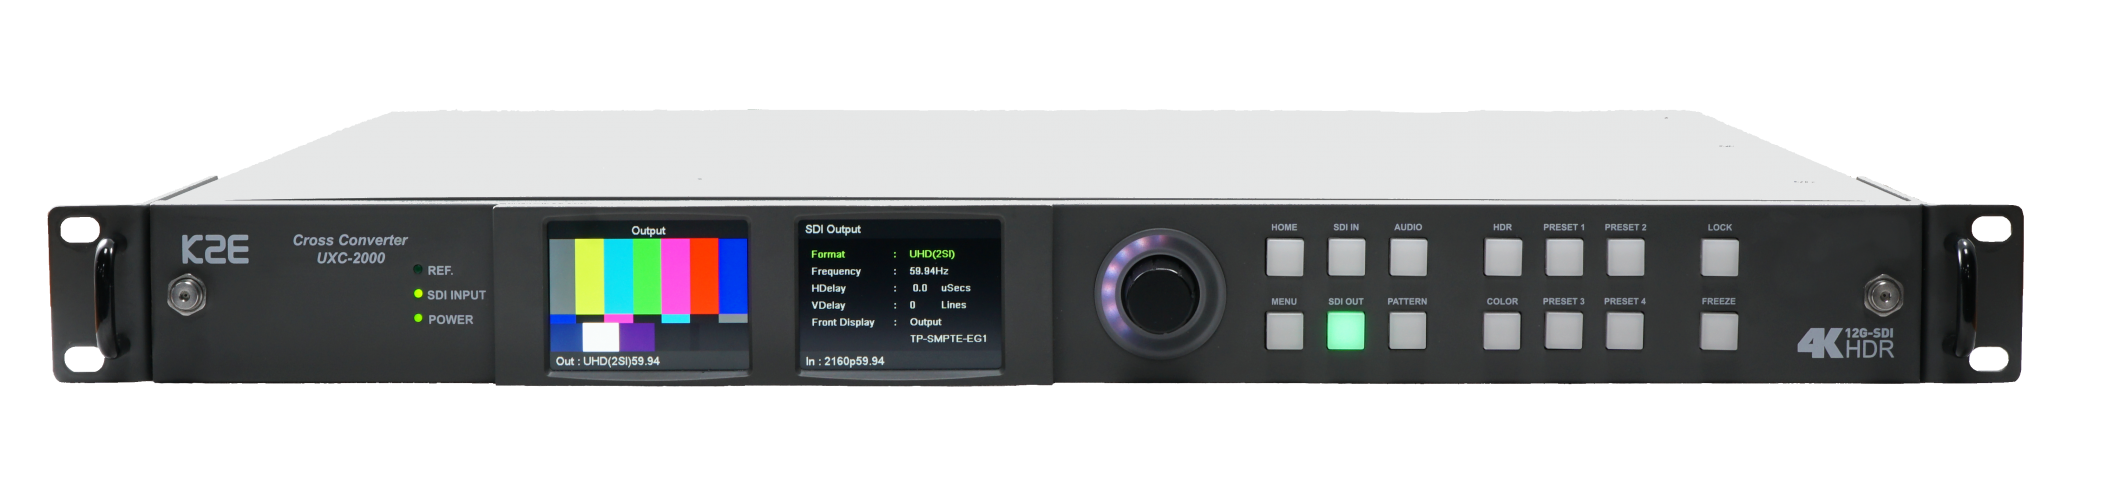 UHD 4K 12G-SDI Cross Converter with HDR/SDR Processing